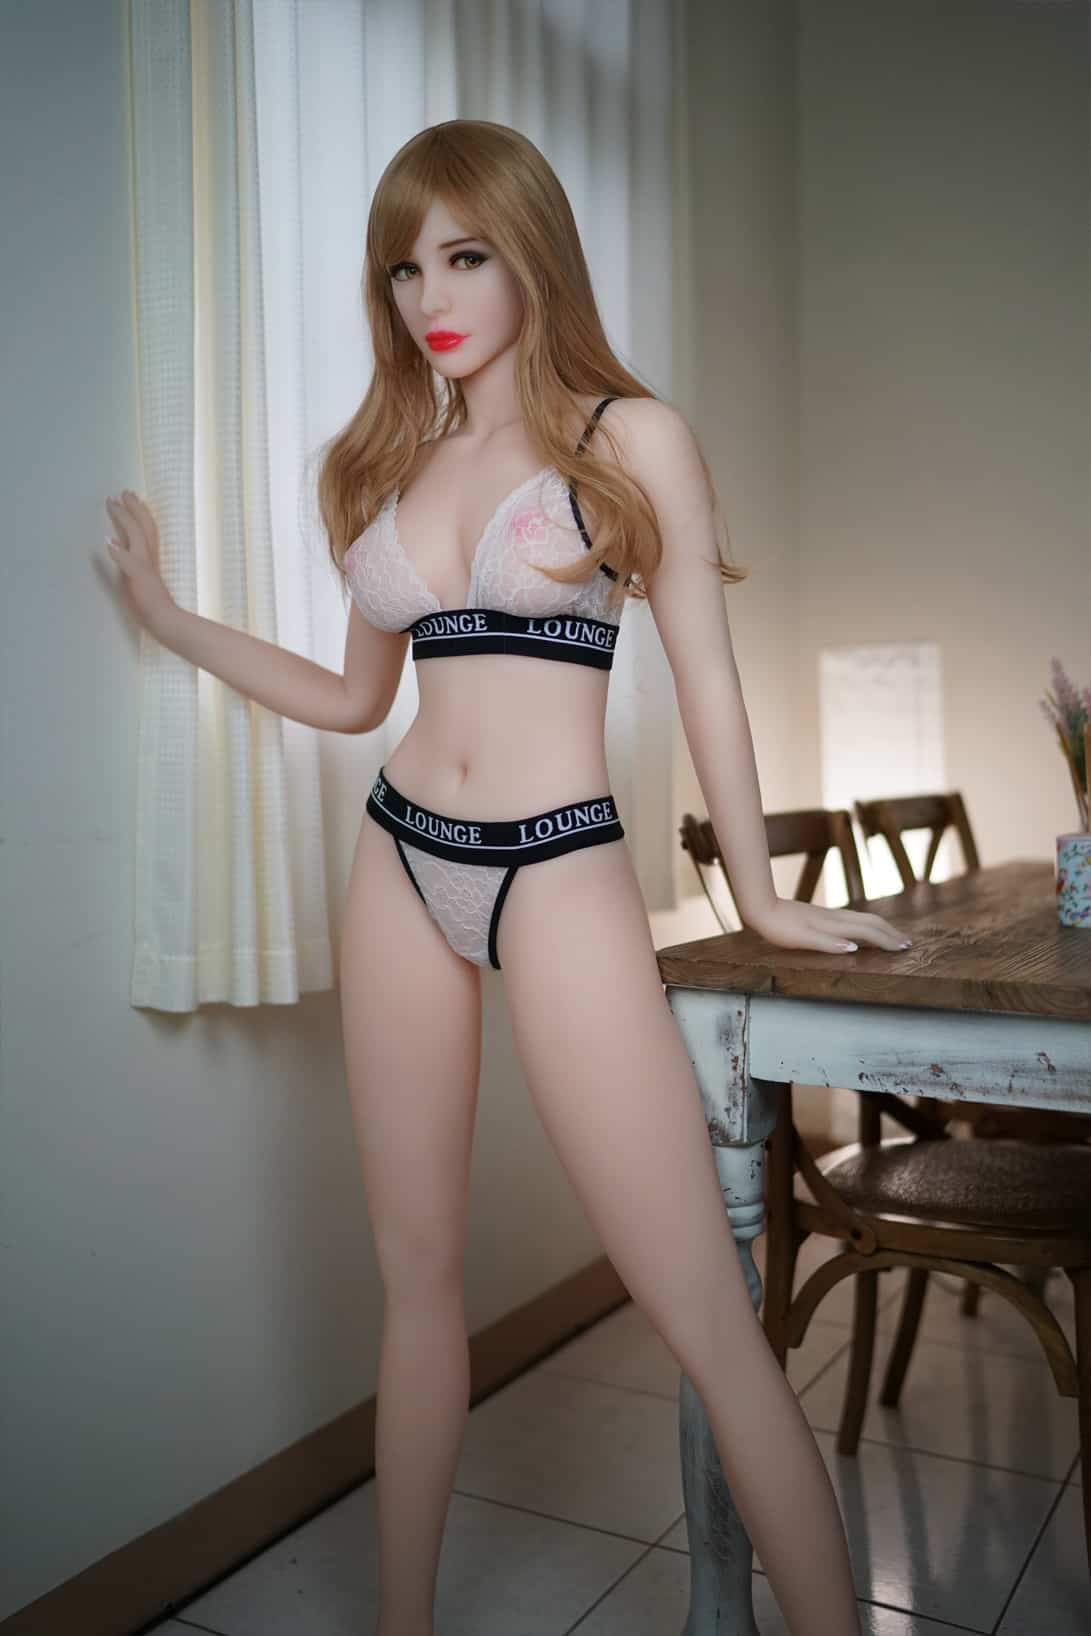 Chloe-Sex-Dolls-Posing-Nude-hot-red-head-from-dirty-knights-sex-dolls-1 (11)